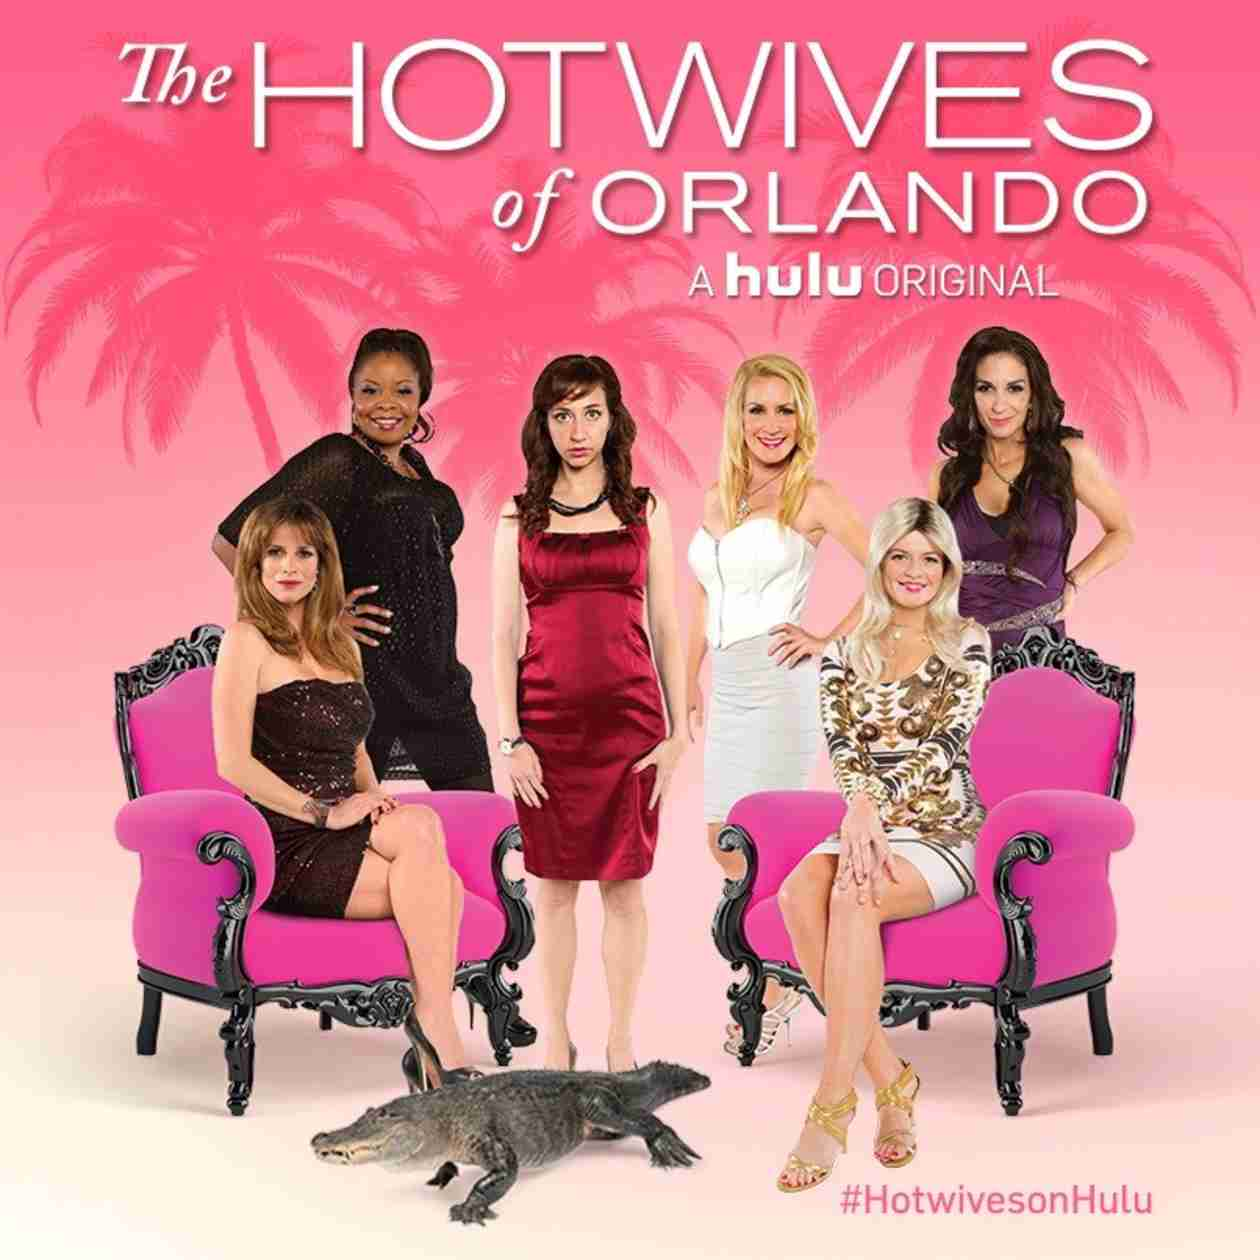 Hotwives of Orlando Trailer: Check Out Hulu's Hilarious New Spoof Series (VIDEO)